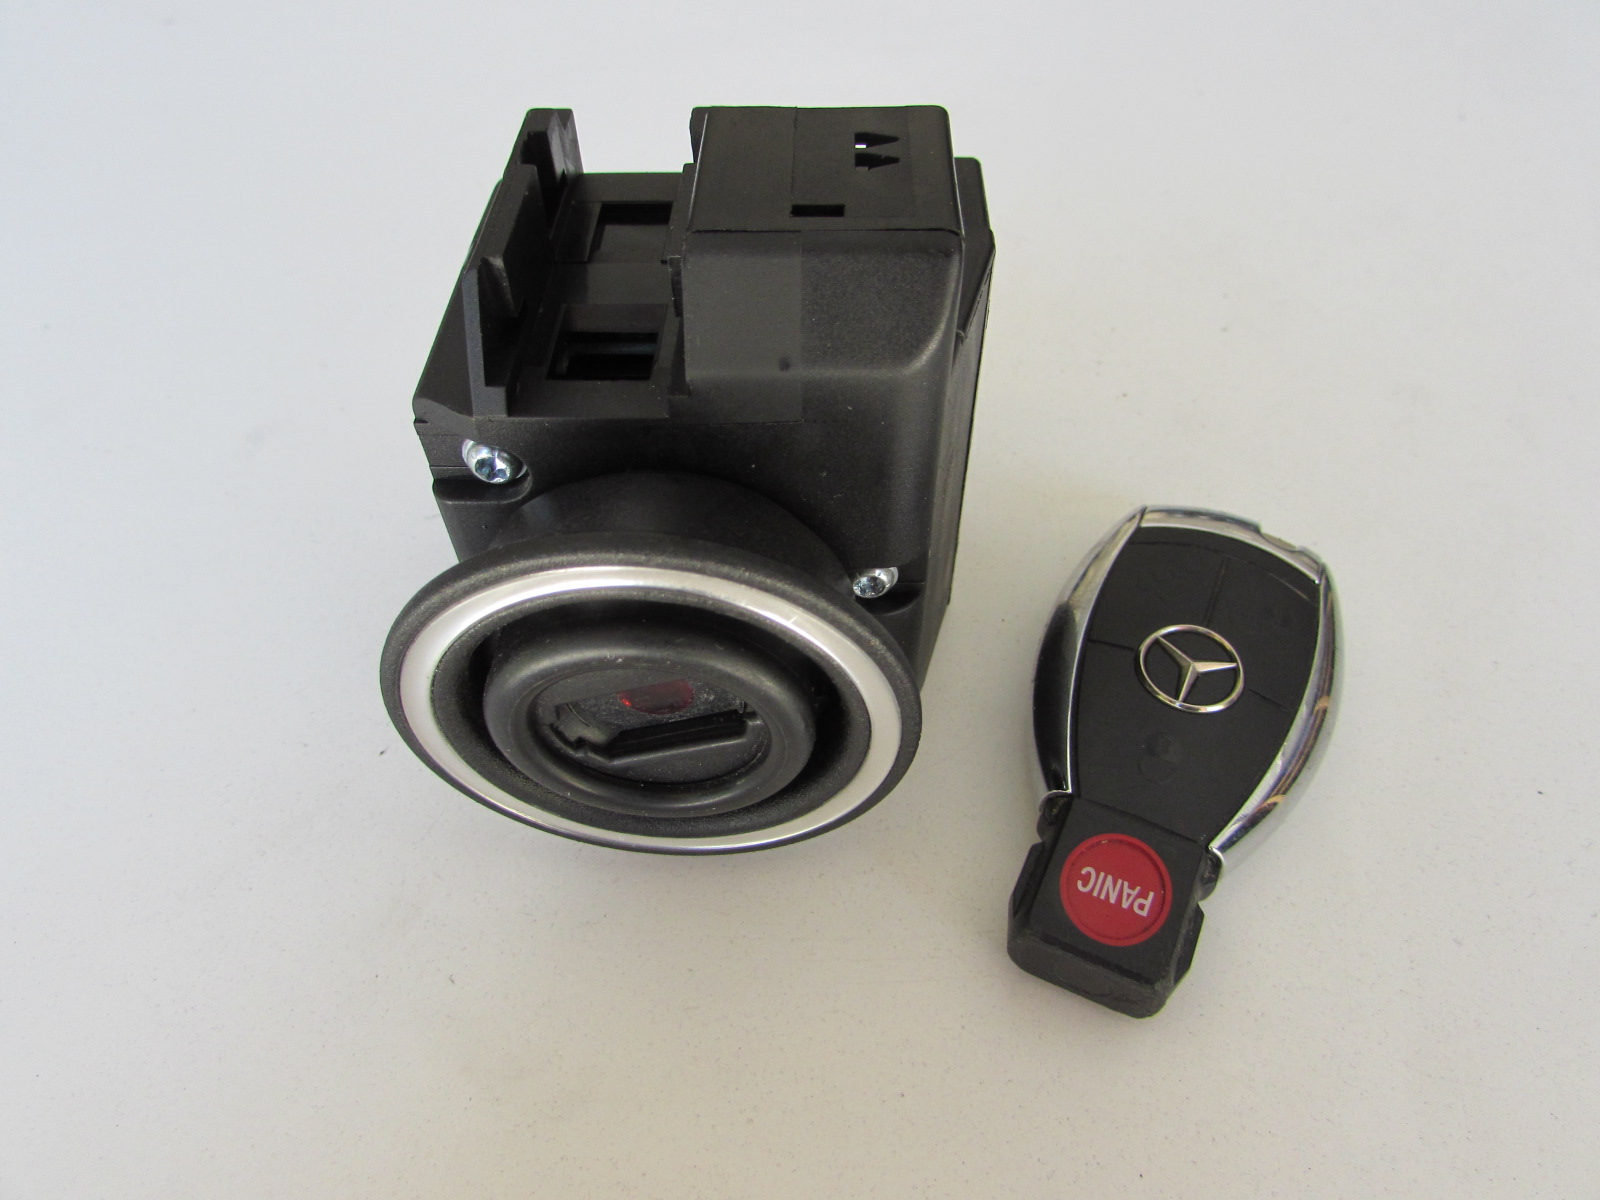 Mercedes ignition w key 2105450208 w202 w208 w210 c clk e for Key for mercedes benz cost